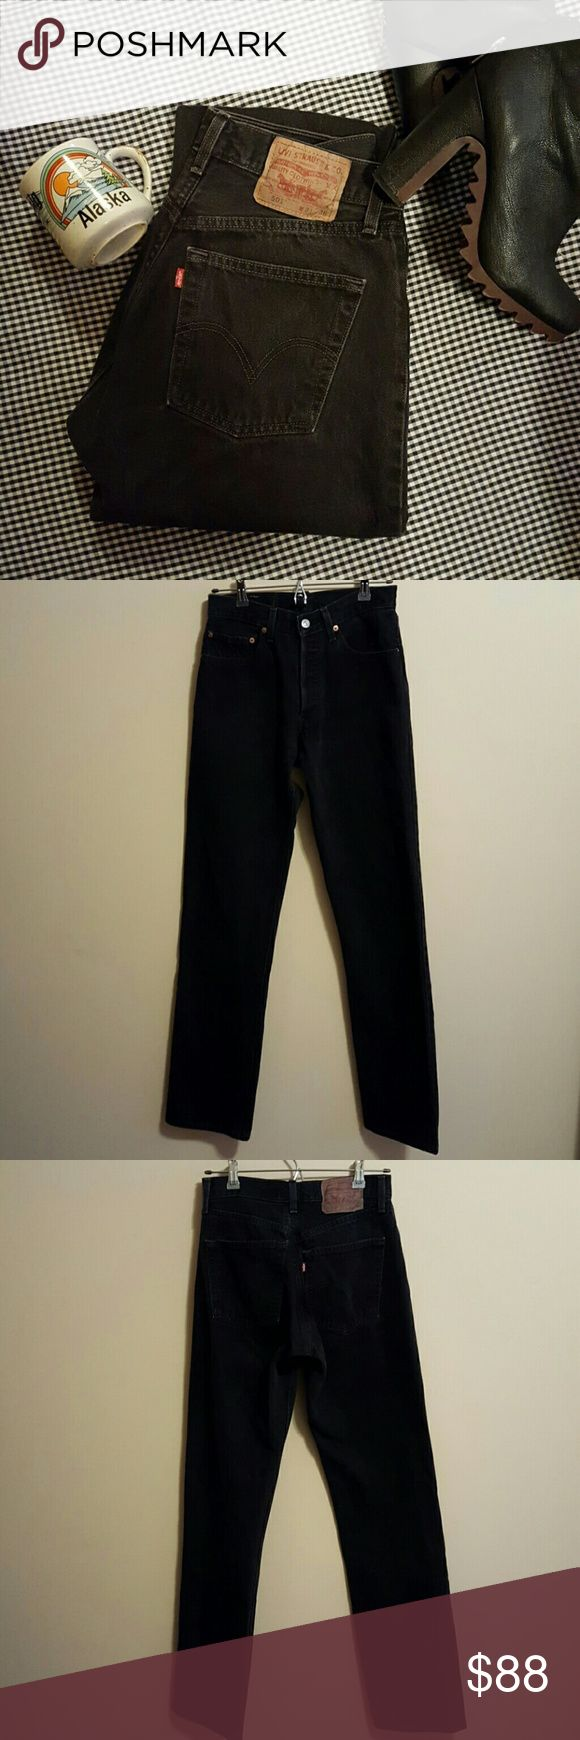 Vintage Levi's 501 Black Button Fly Jeans Vintage Levi's 501 90's black denim jeans with killer button fly. Vintage size 31 but fit more like a modern size 27/28 or size 6. Fantastic condition without any notable flaws. They are quite long and could be cut to desired length.   Measurements laying flat in inches  Waist 13.5-14 Hips 18.5 Front Rise 10.5 Inseam 34 Leg Opening 8 Vintage Jeans